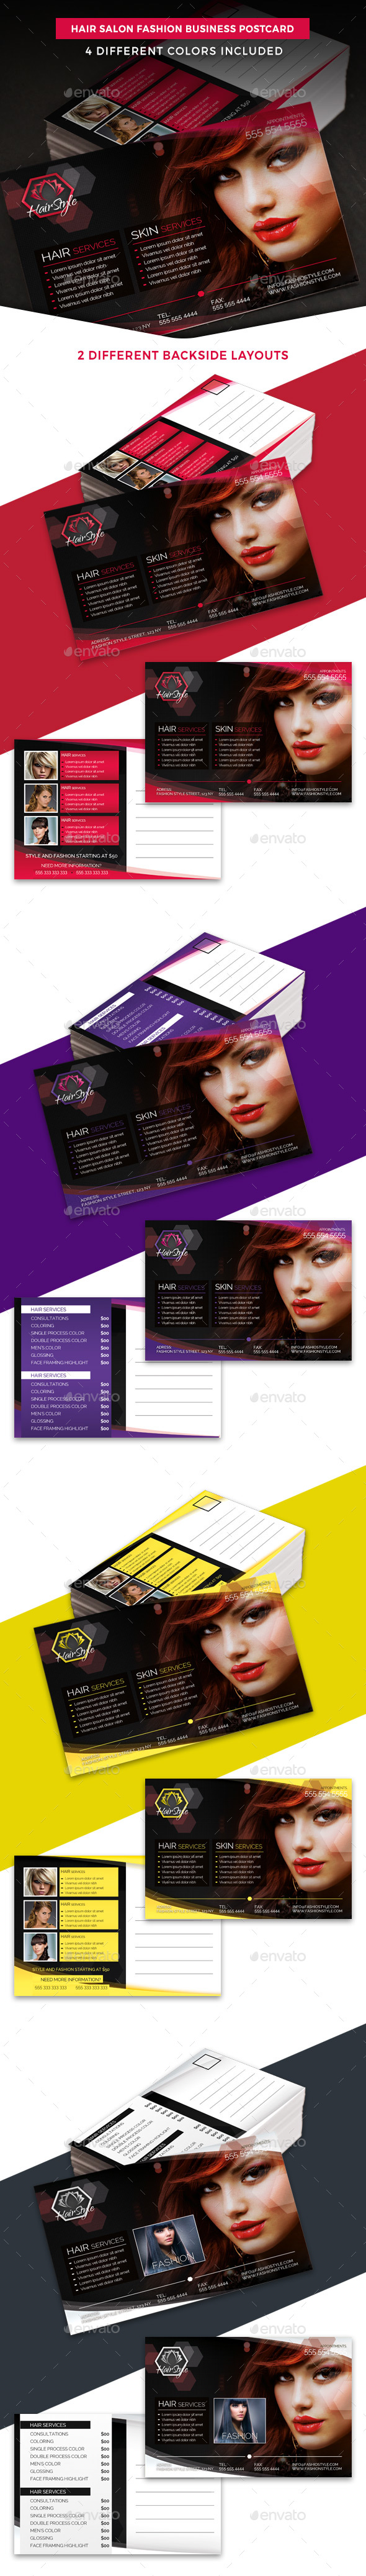 Hair Salon Fashion Business Postcard Template By Hollymolly Graphicriver